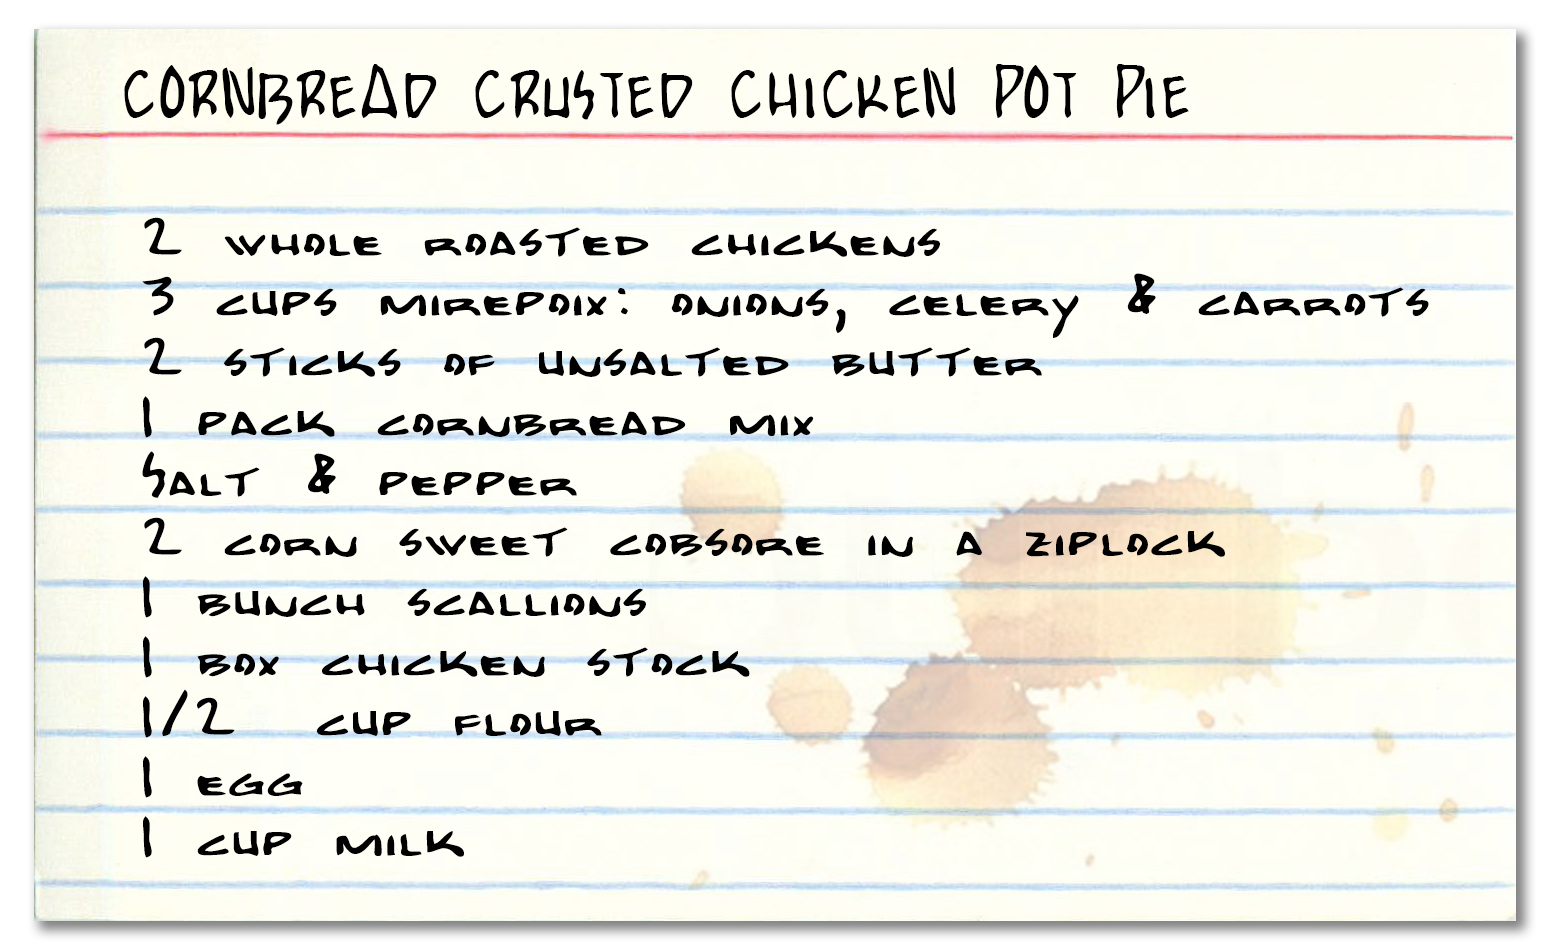 Recipe card for Cornbread crusted chicken pot pie